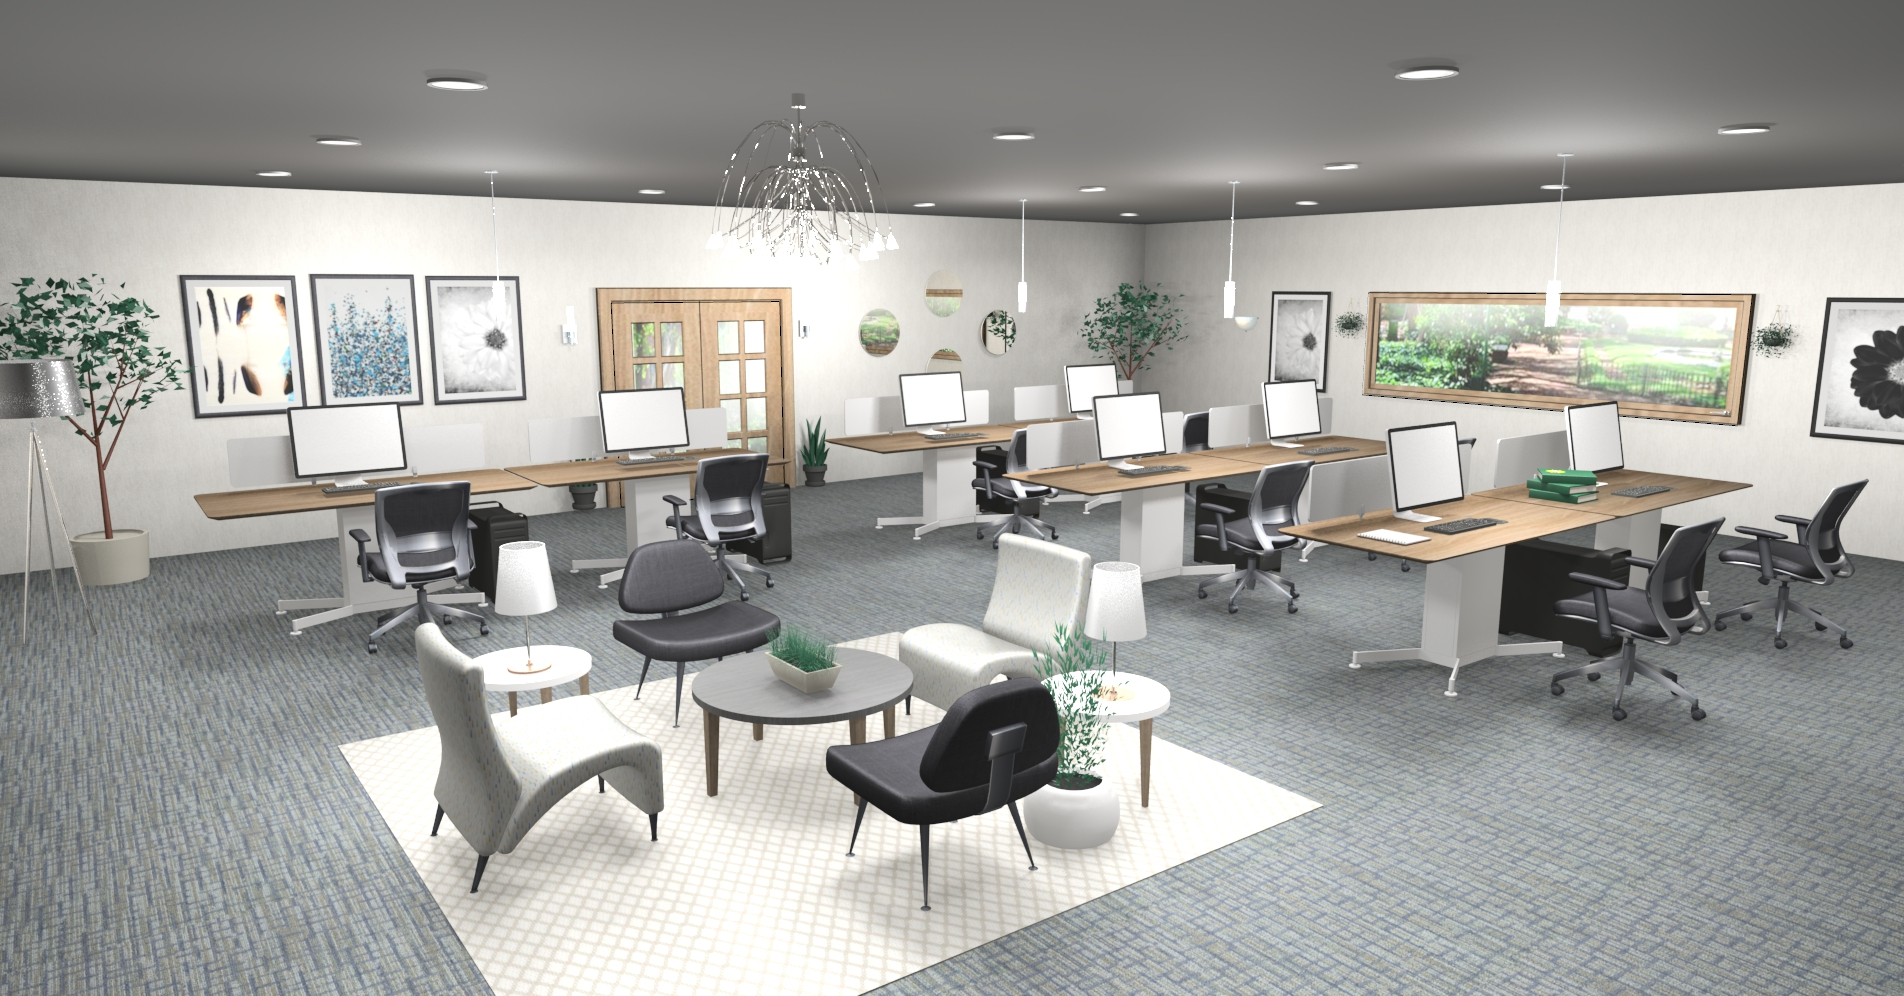 2020 blog office trends in 2016 2020